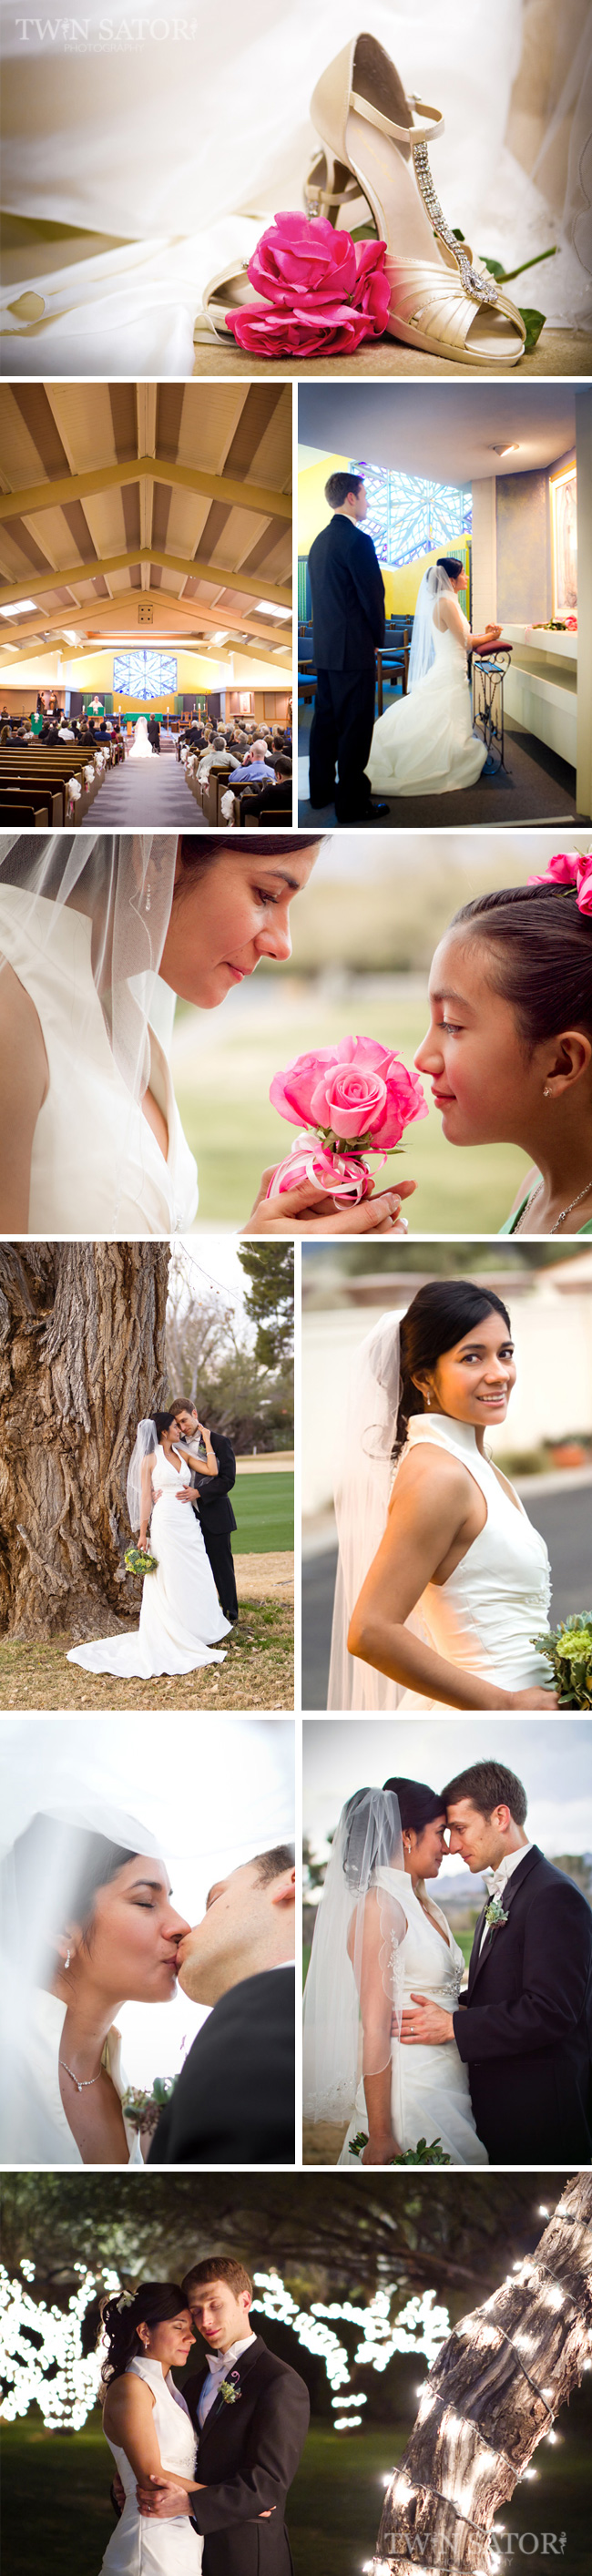 Storytelling | An Elegant Country Club Wedding | Tucson Wedding Photographer | Twin Satori Photography